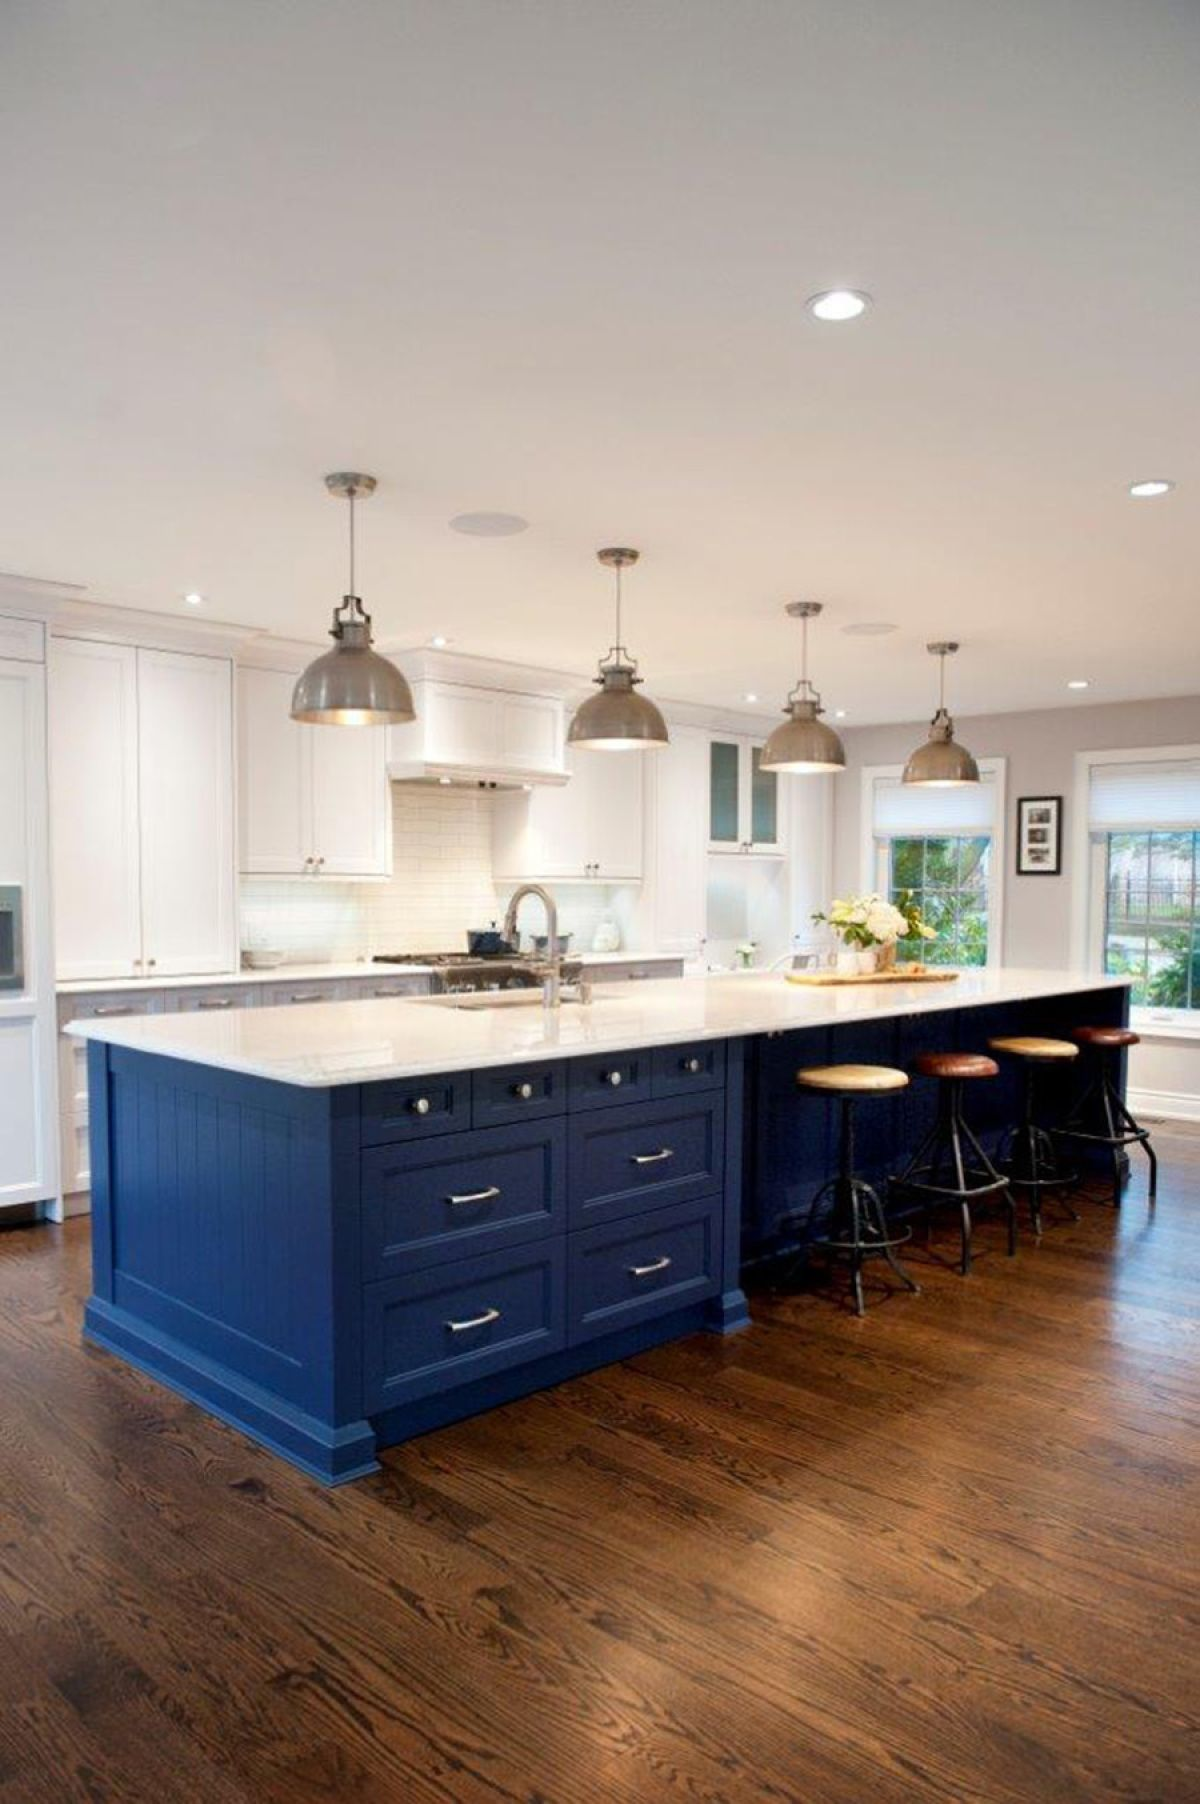 A Dream Home Renovation Complete With Oversized Kitchen Island - Pinterest kitchen island